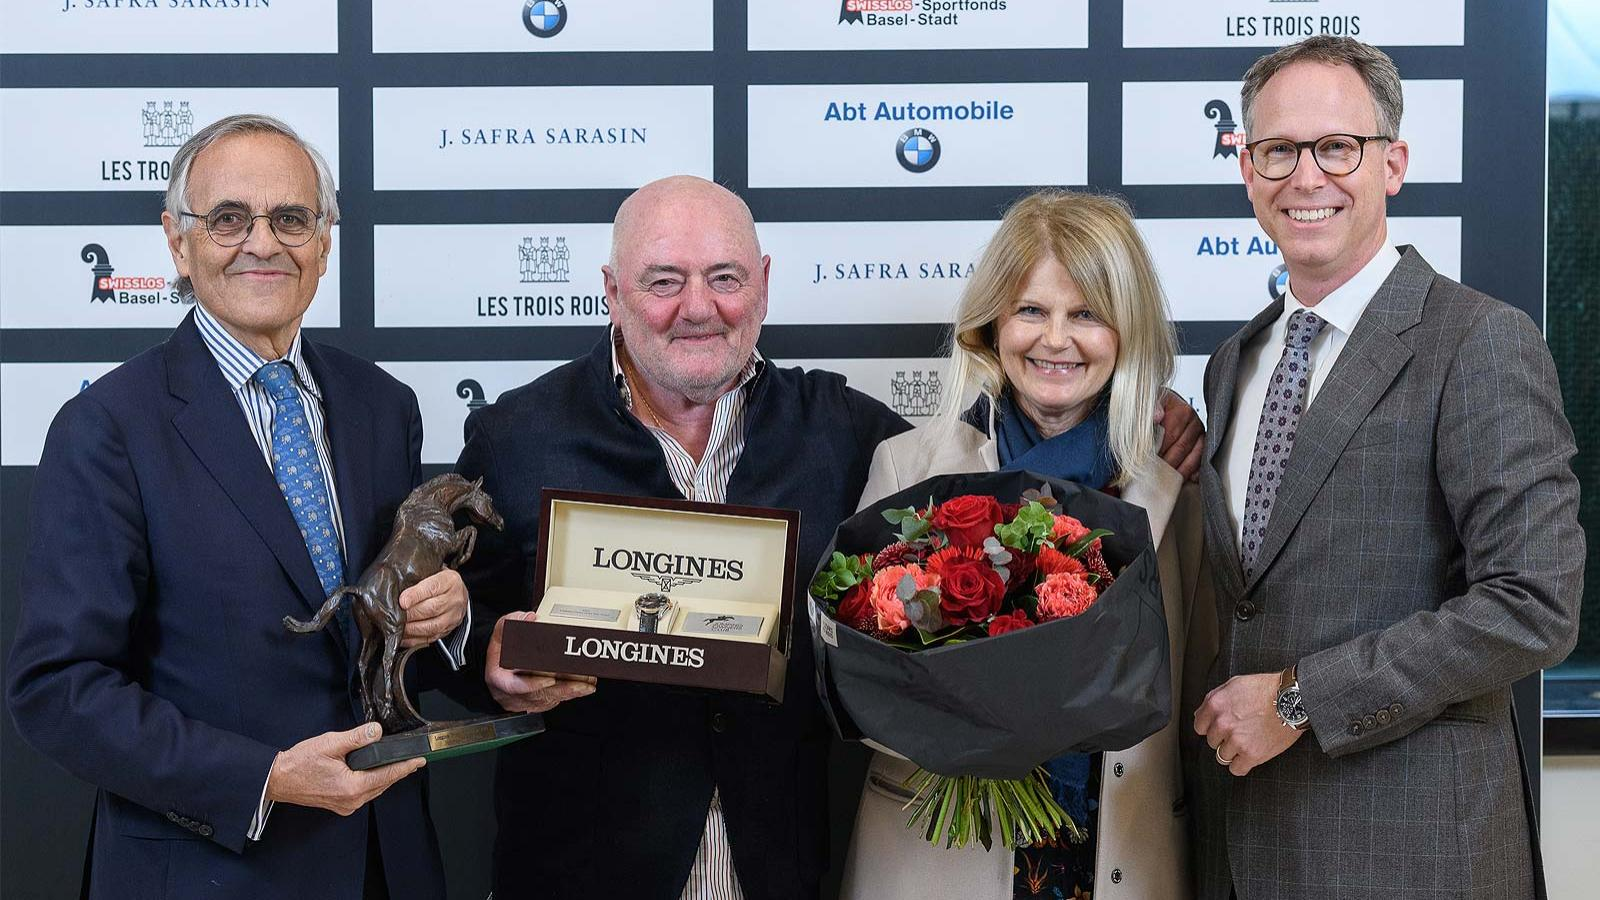 Luigi Baleri; 2019 Longines Owner of the Year